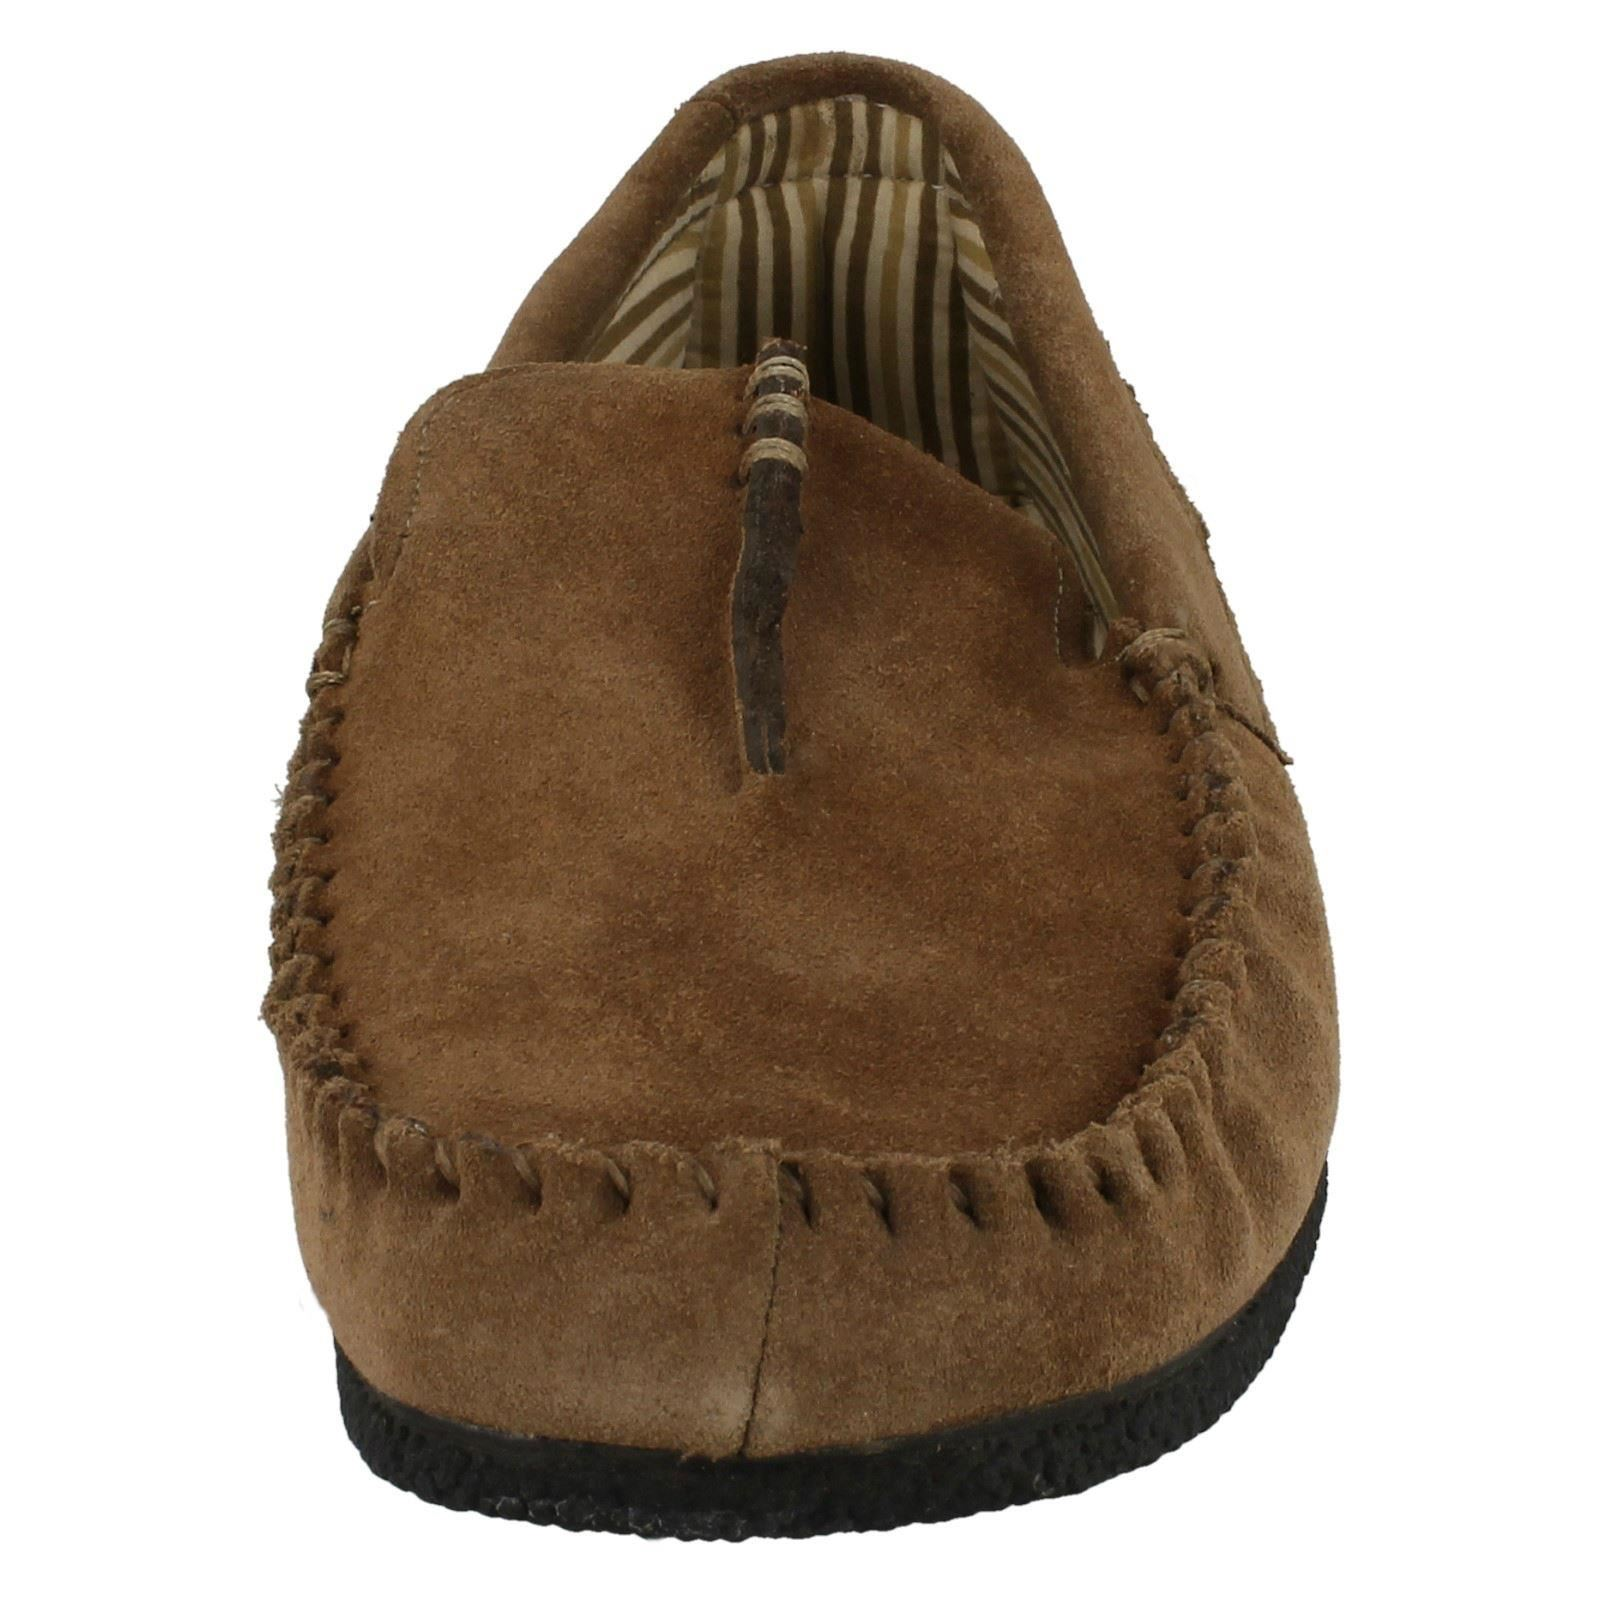 Clarks Mens Moccasin Style Slippers - Kite Driver